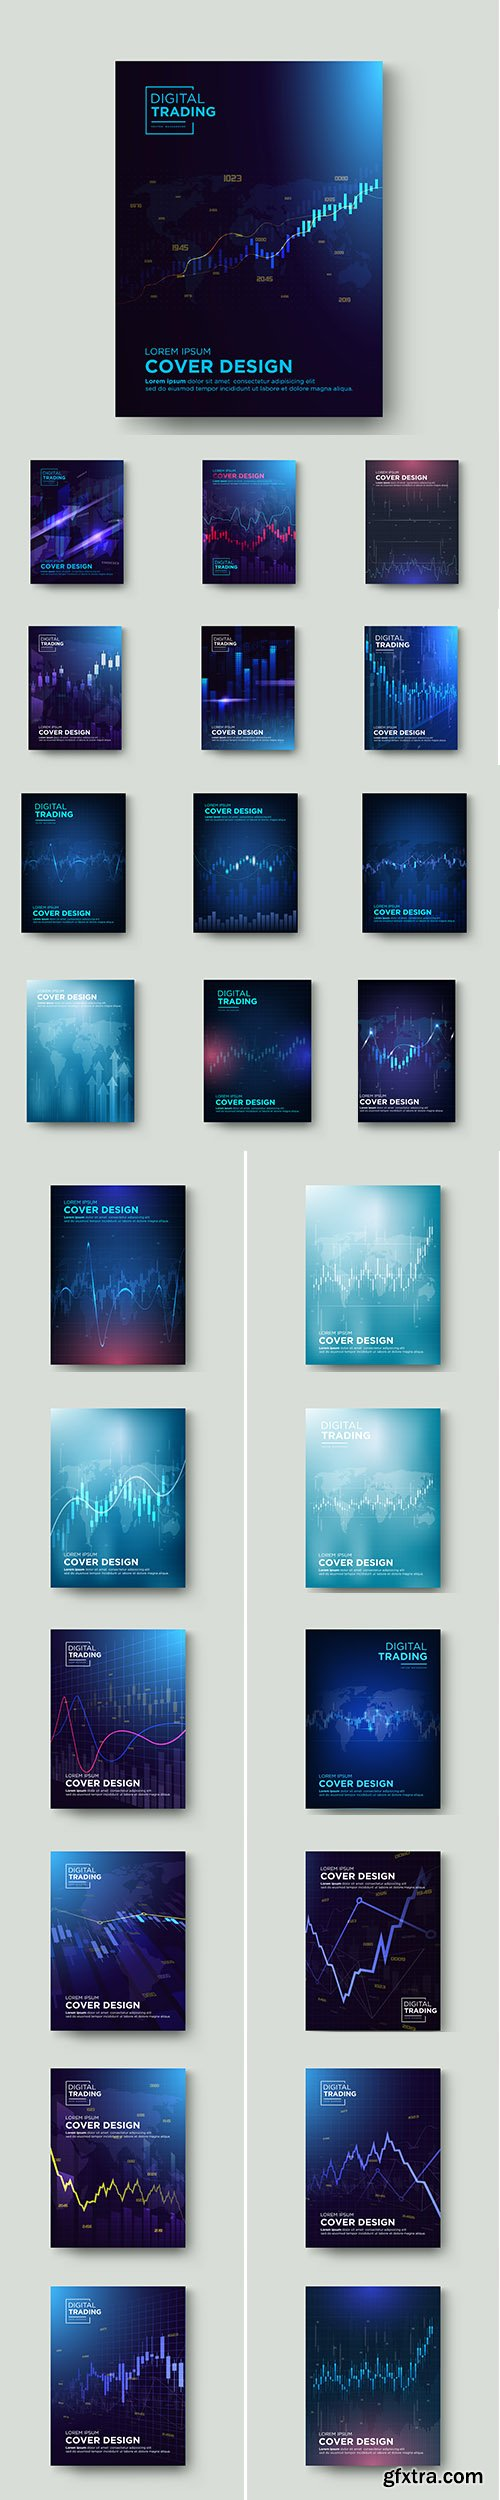 Cover Trading with Graphic Premium Illustrations Vector Set